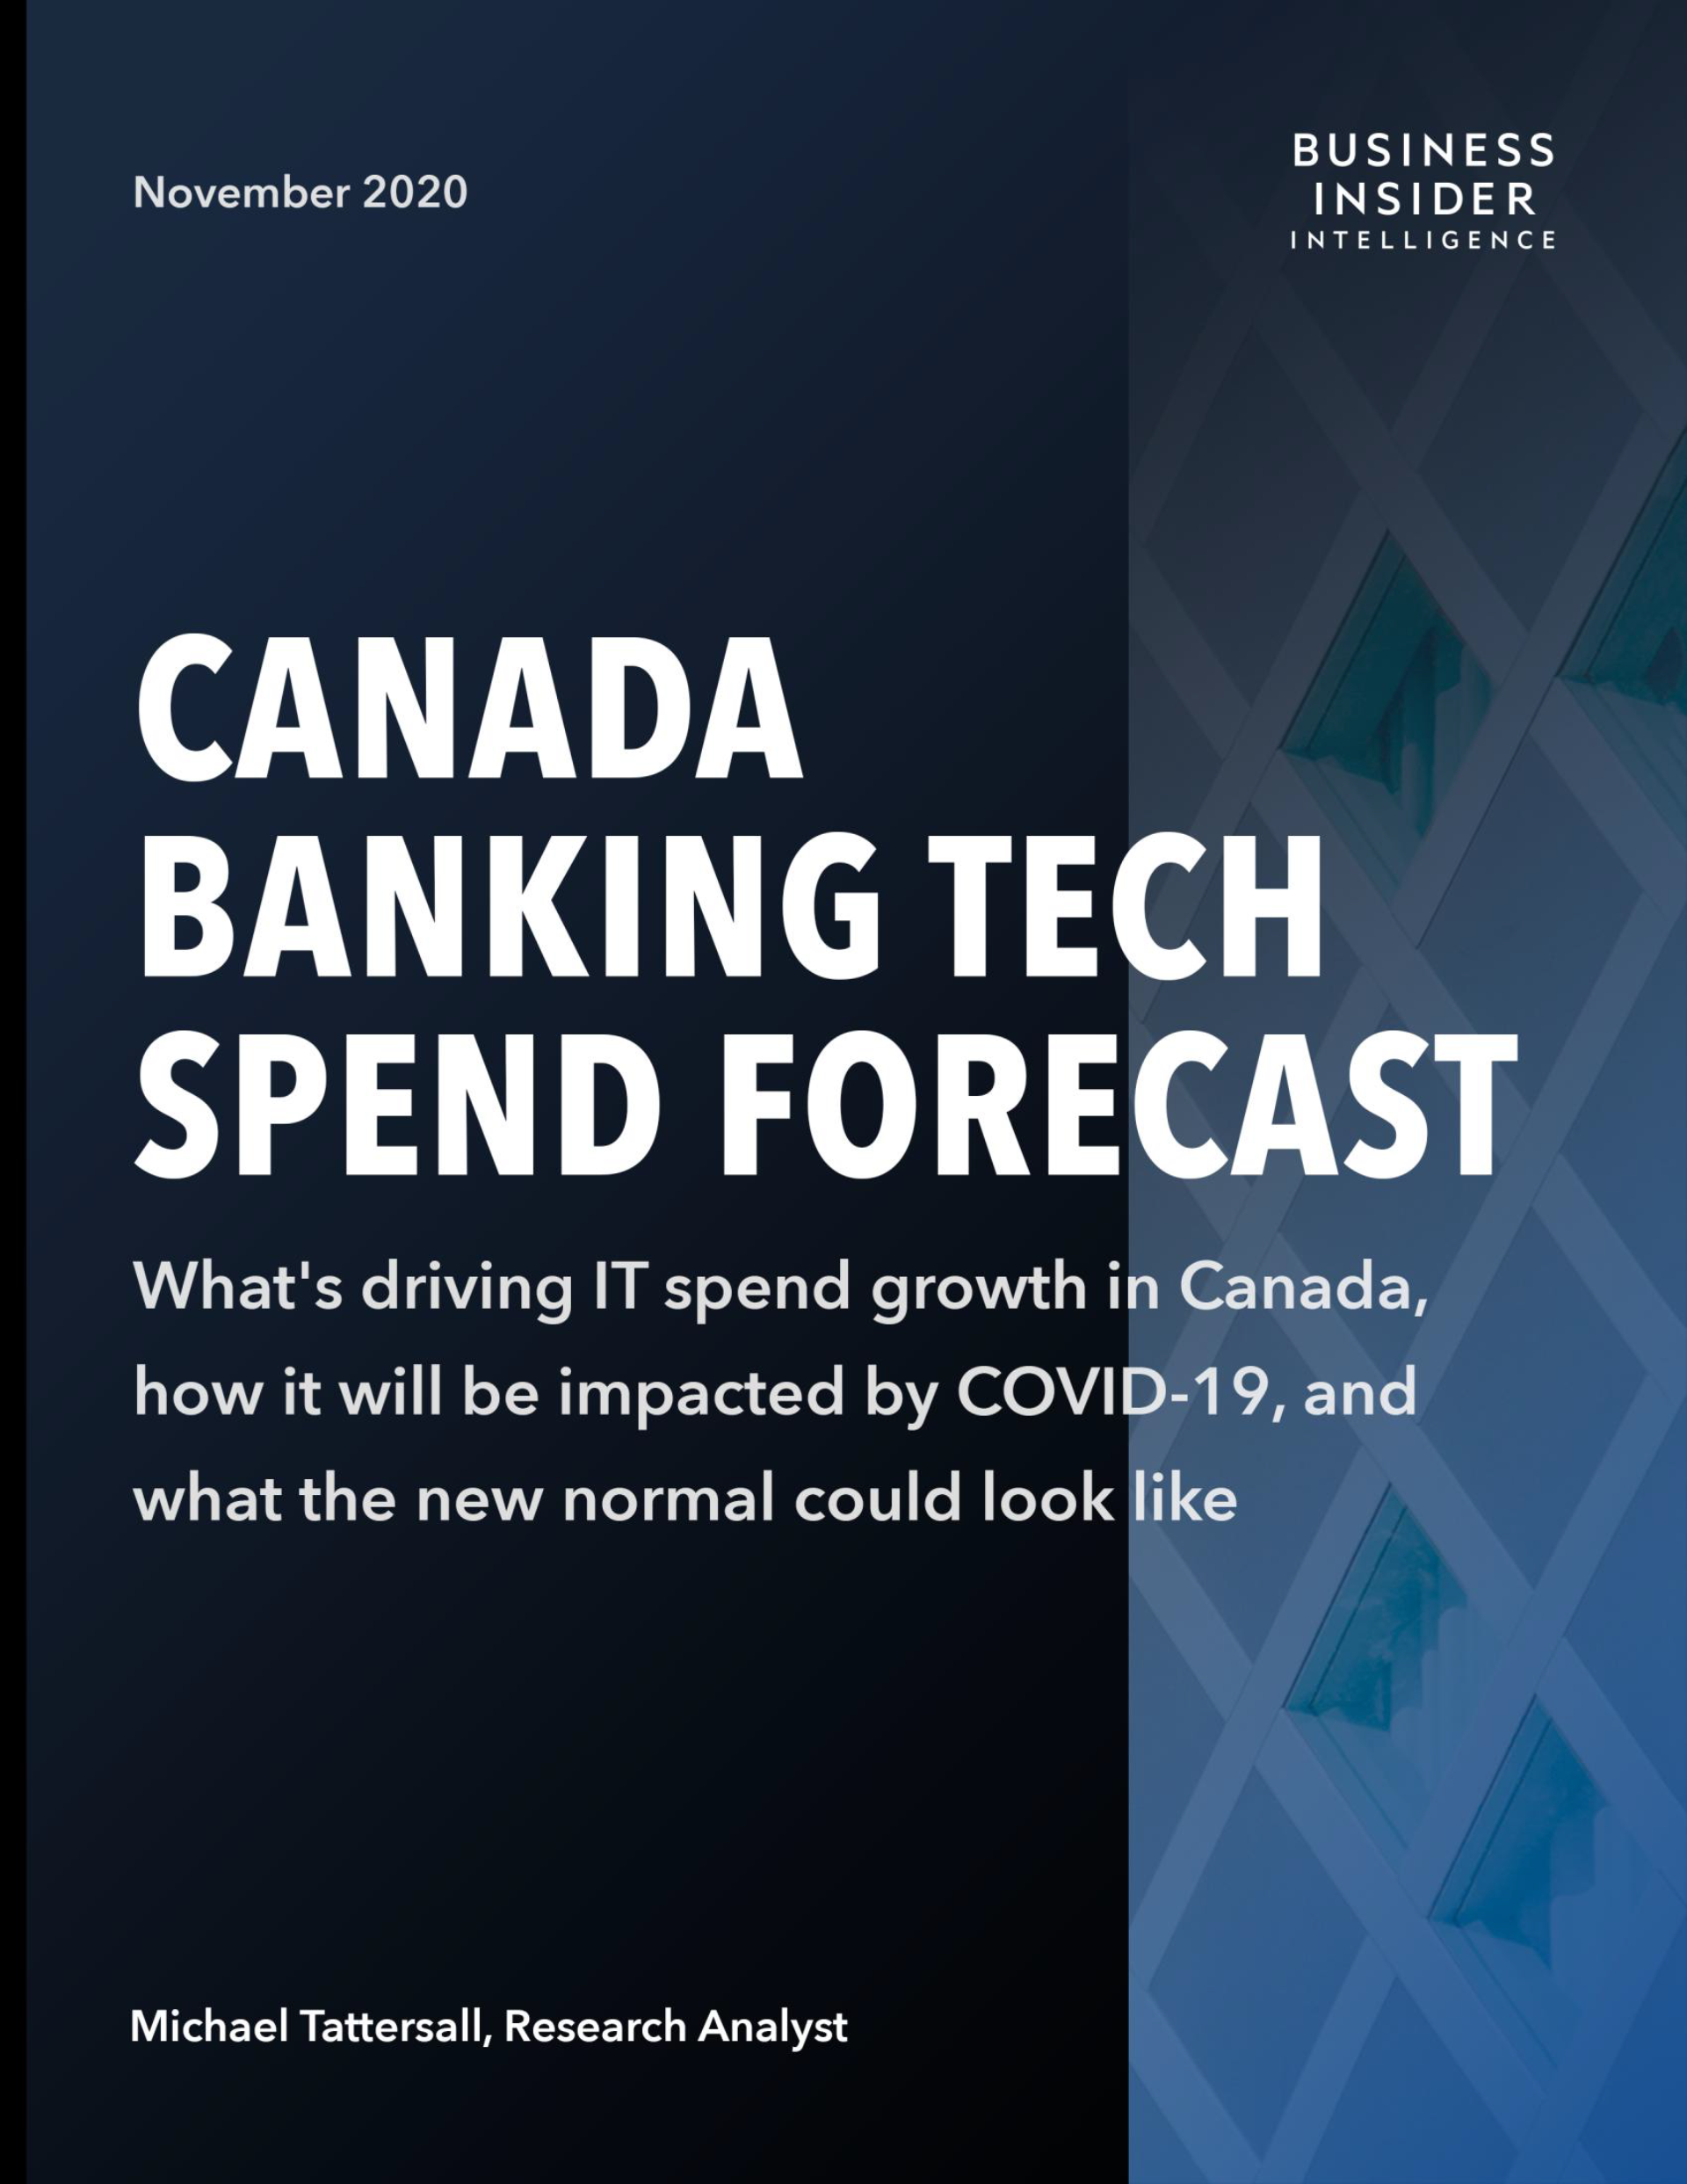 Canada Banking Tech Spend Forecast